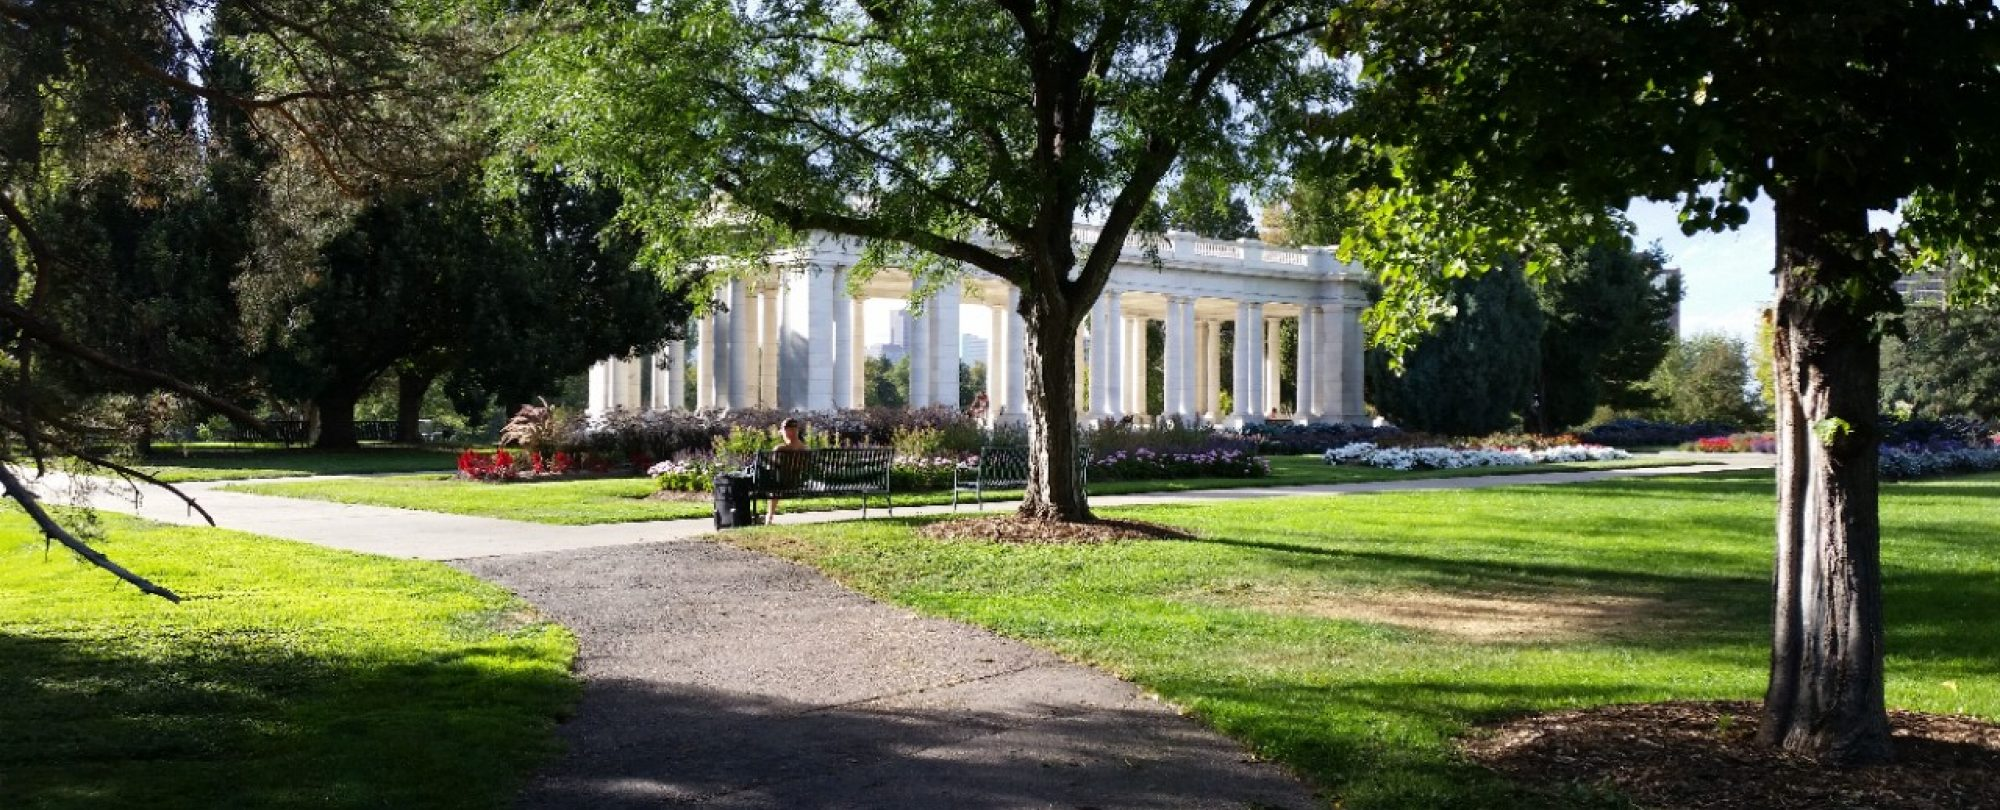 Image of Cheesman Park and Pavilion